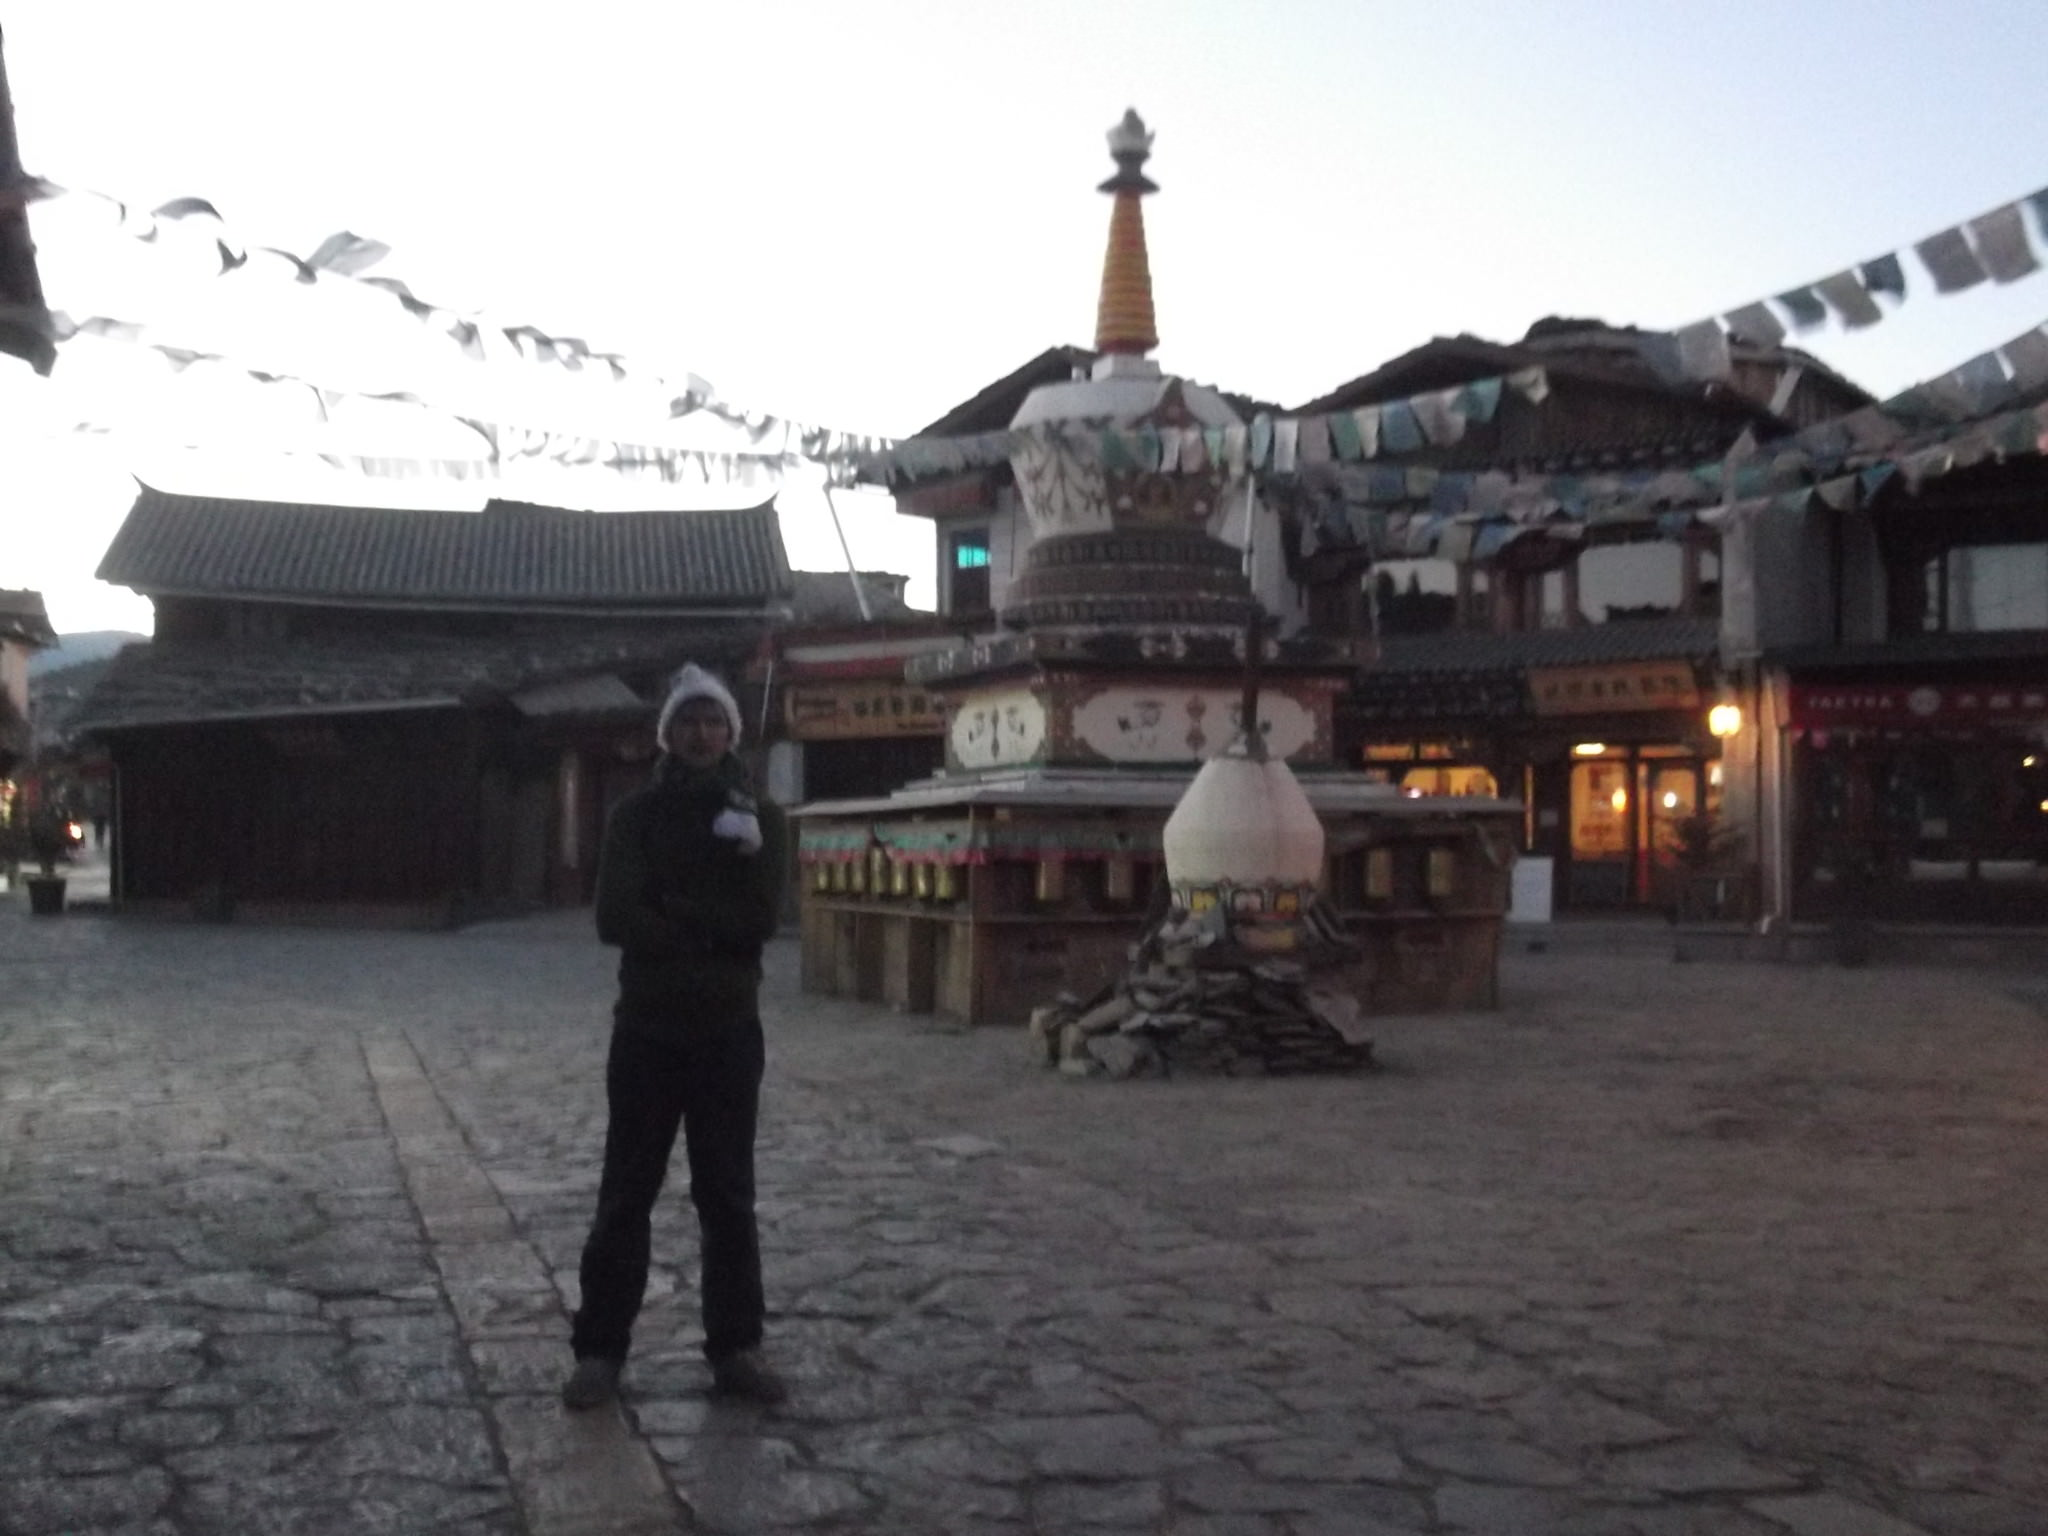 Jonny Blair at a Tibetan Stupa in Shangri La